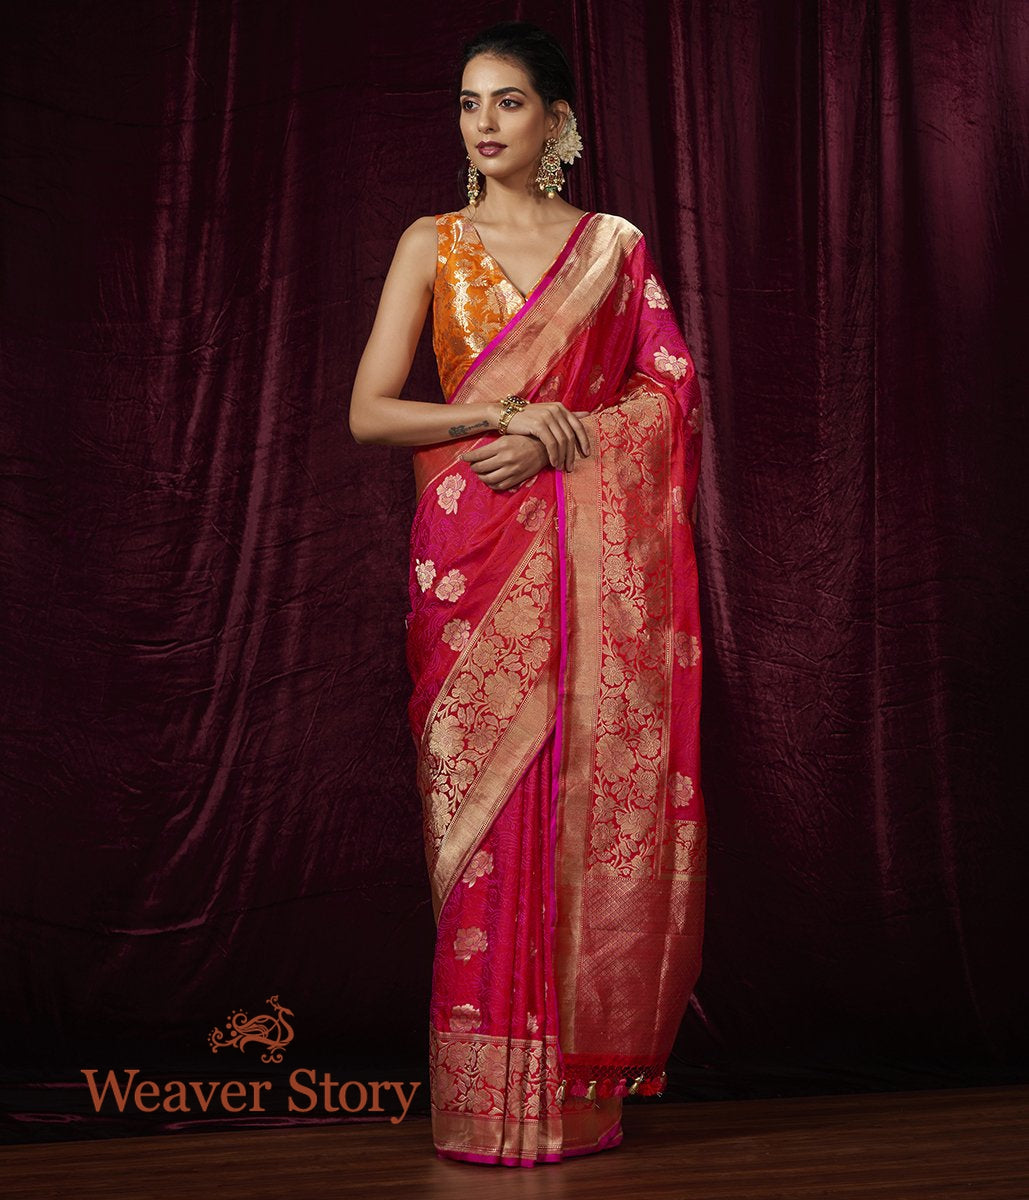 Handwoven Pink Tanchoi Saree with Heavy Floral Border